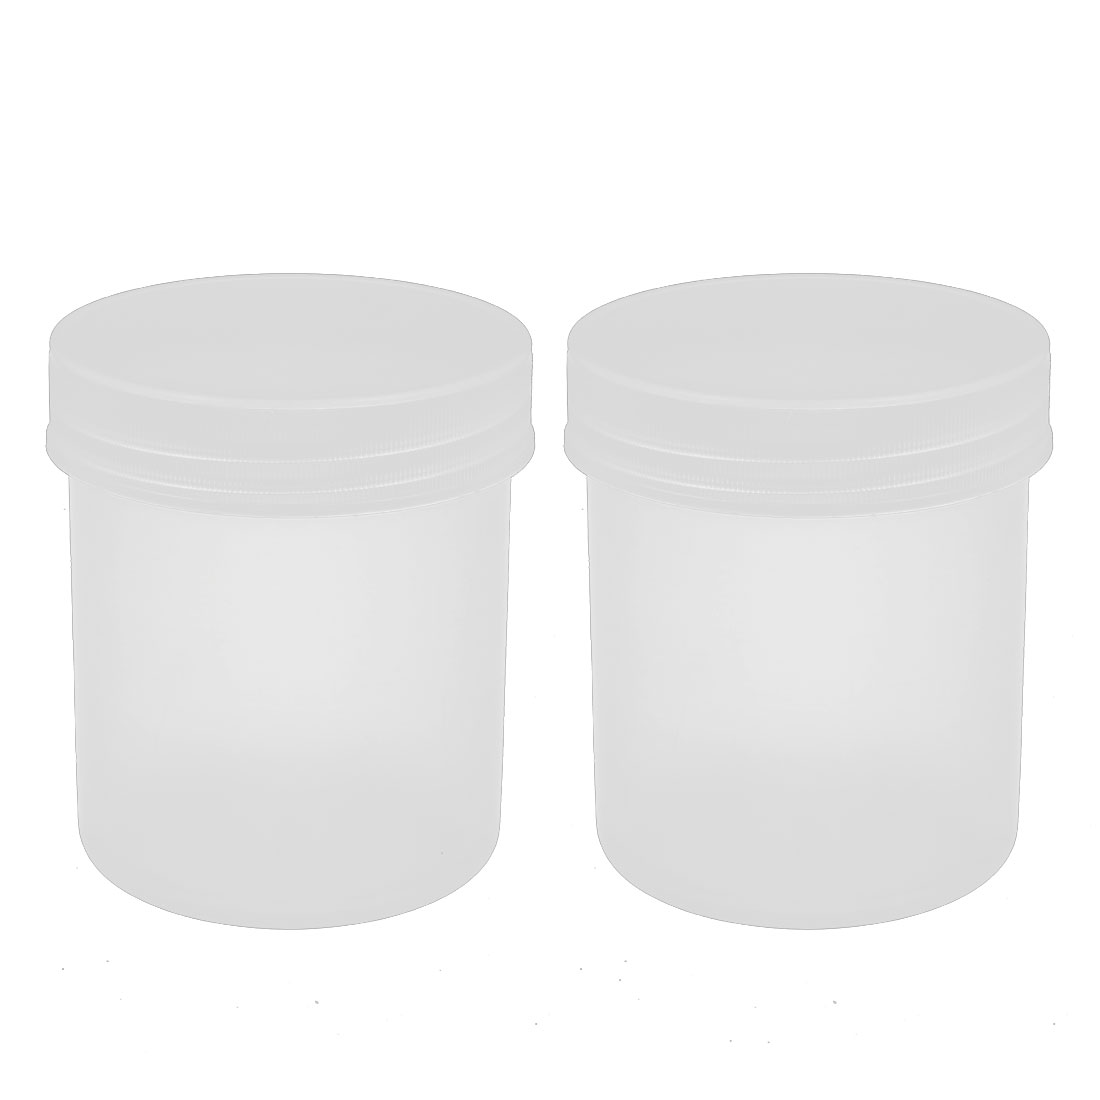 2pcs Lab 100mL PP Graduated Beaker Measuring Cup Translucent w Clear Cover